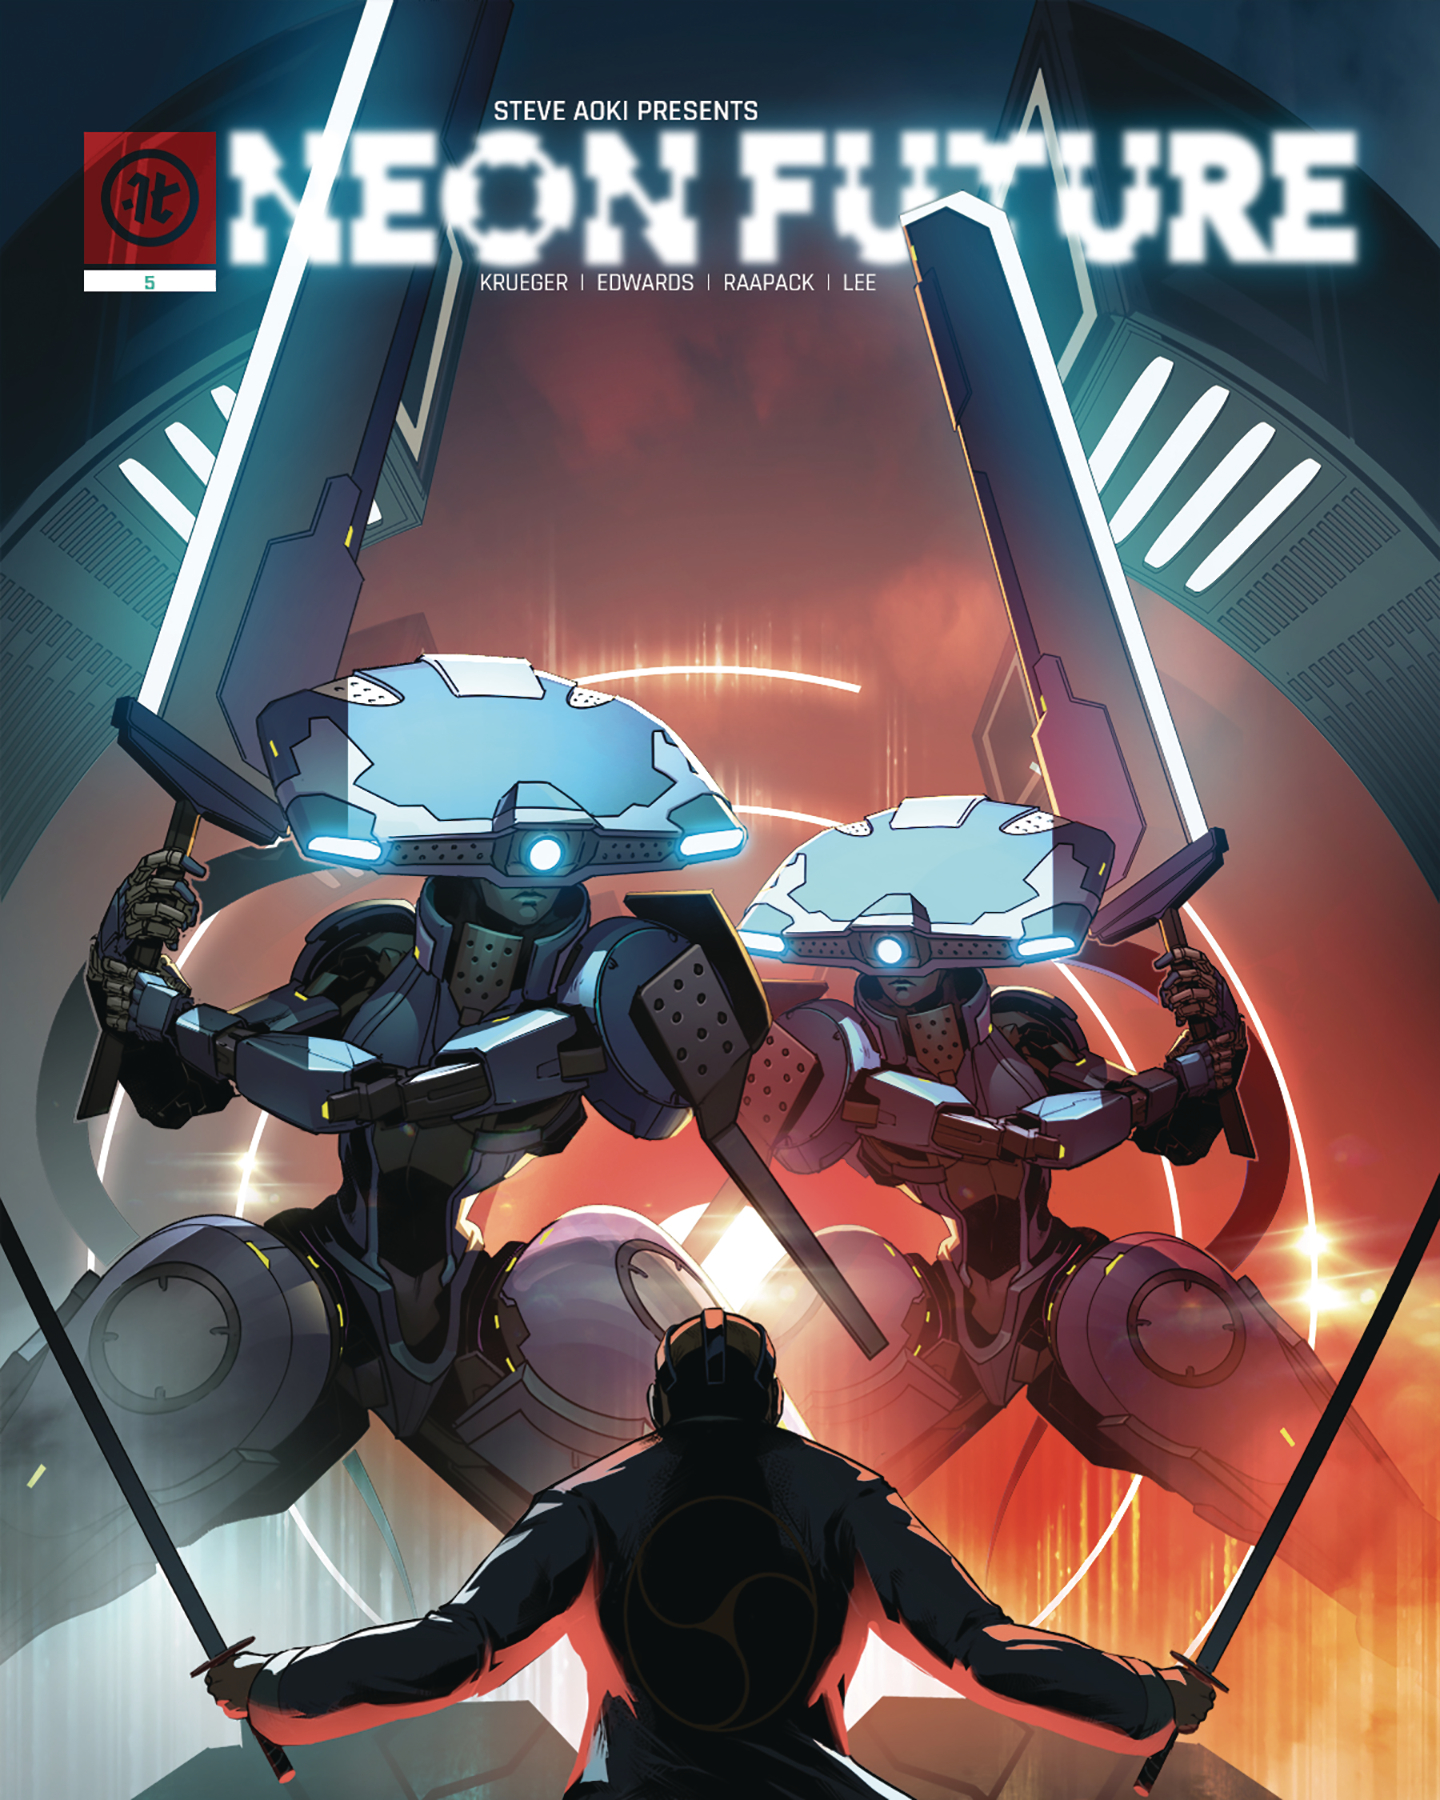 NEON FUTURE #5 (OF 6) CVR B RAAPACK (MR)